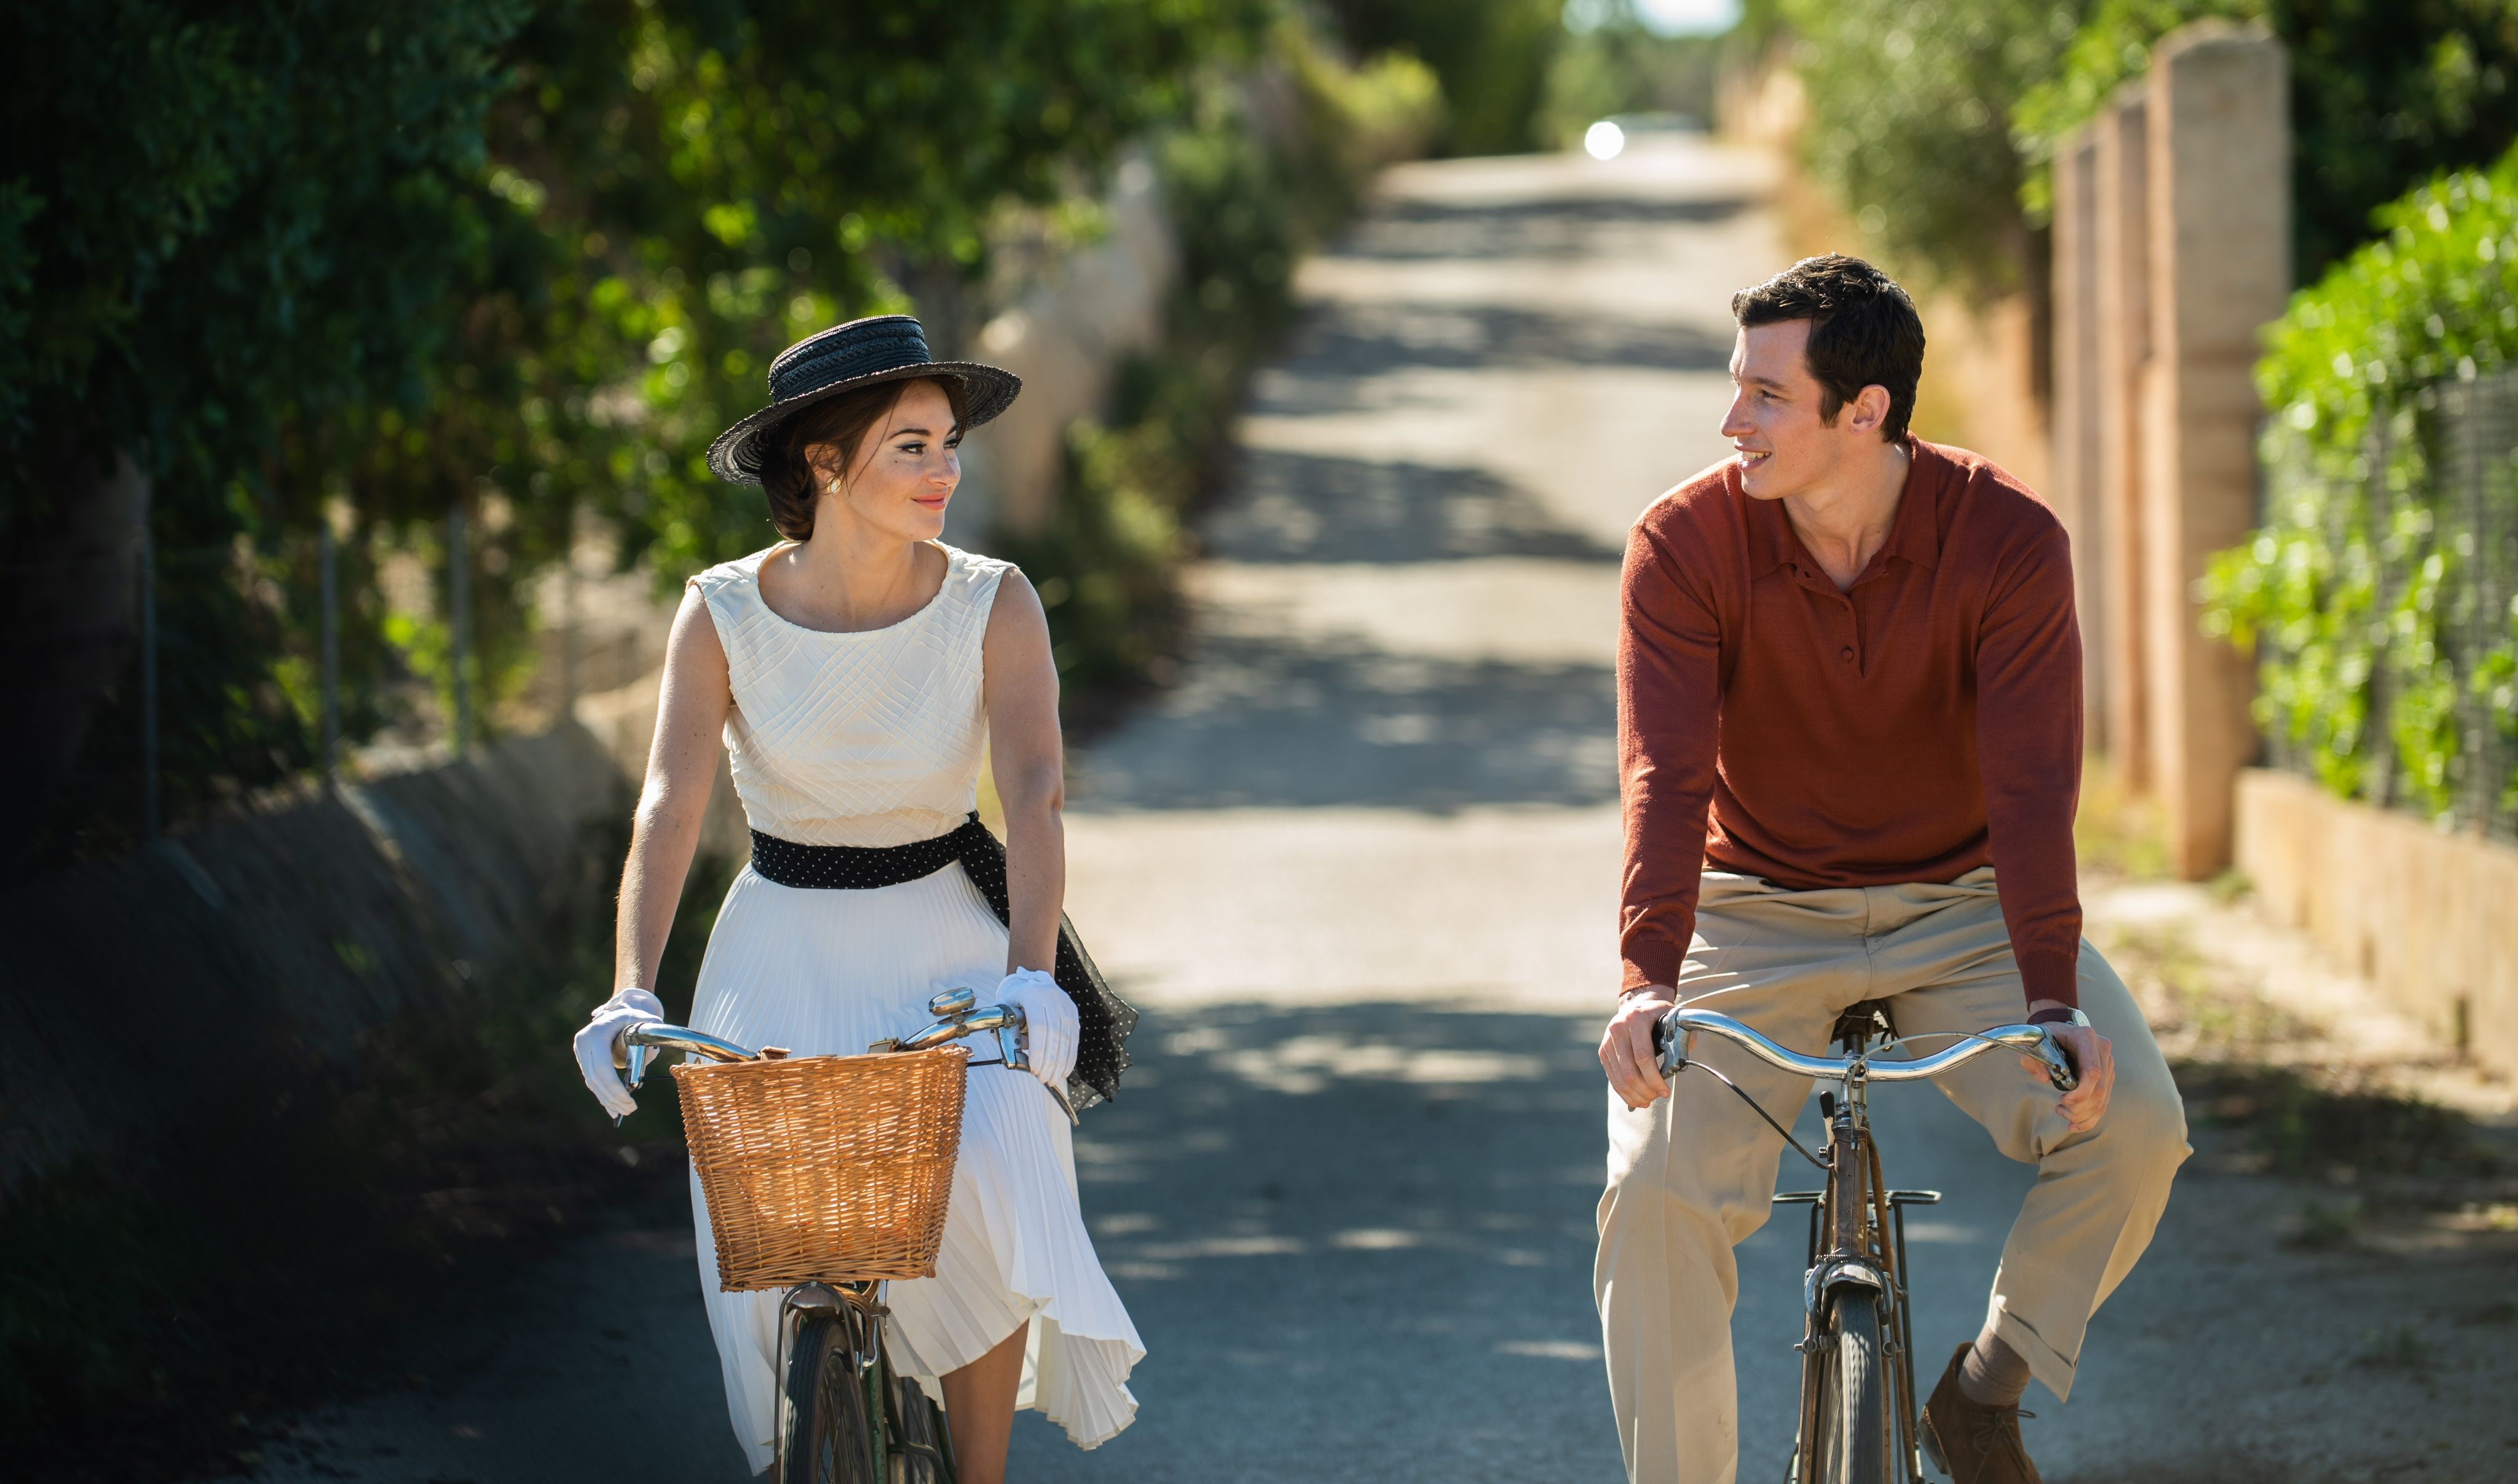 Jojo Moyes' Last Letter From Your Lover has been turned into a film